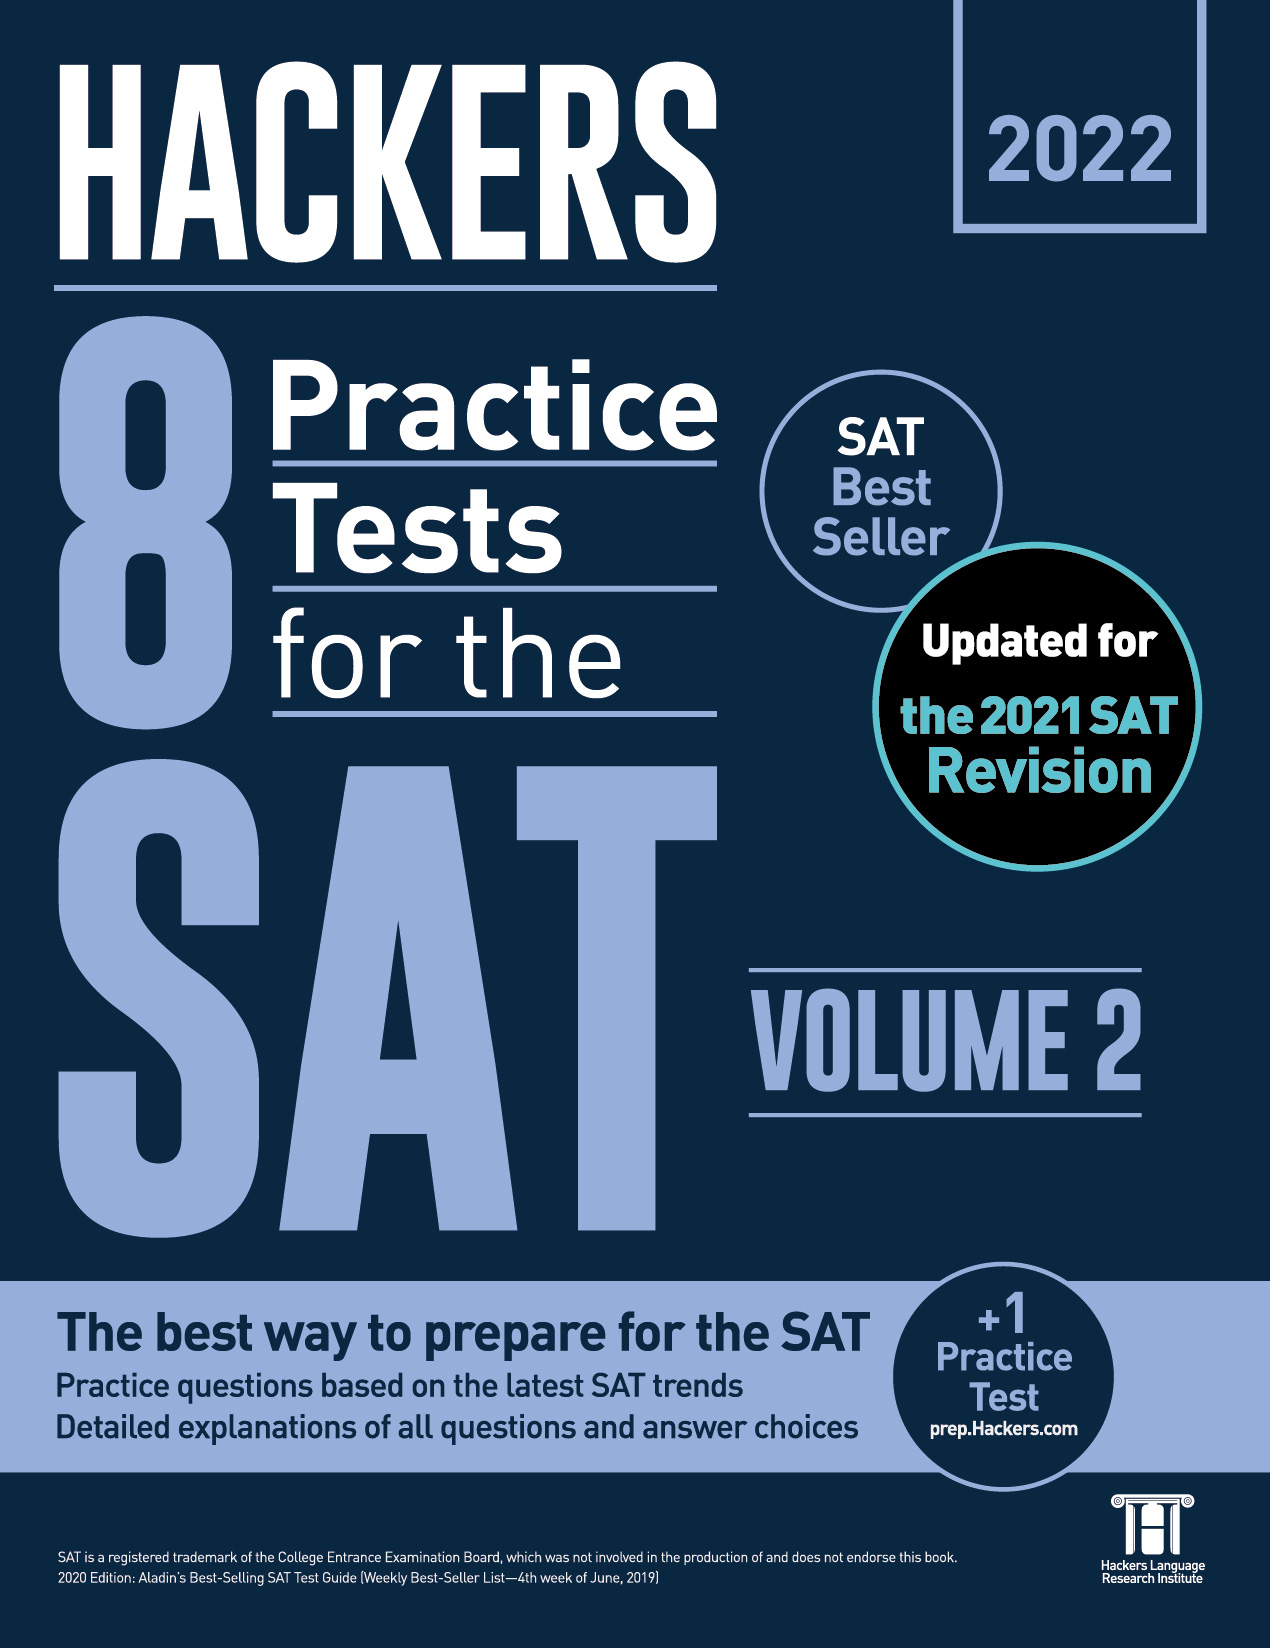 Hackers 8 Practice Tests for the SAT Volume 2